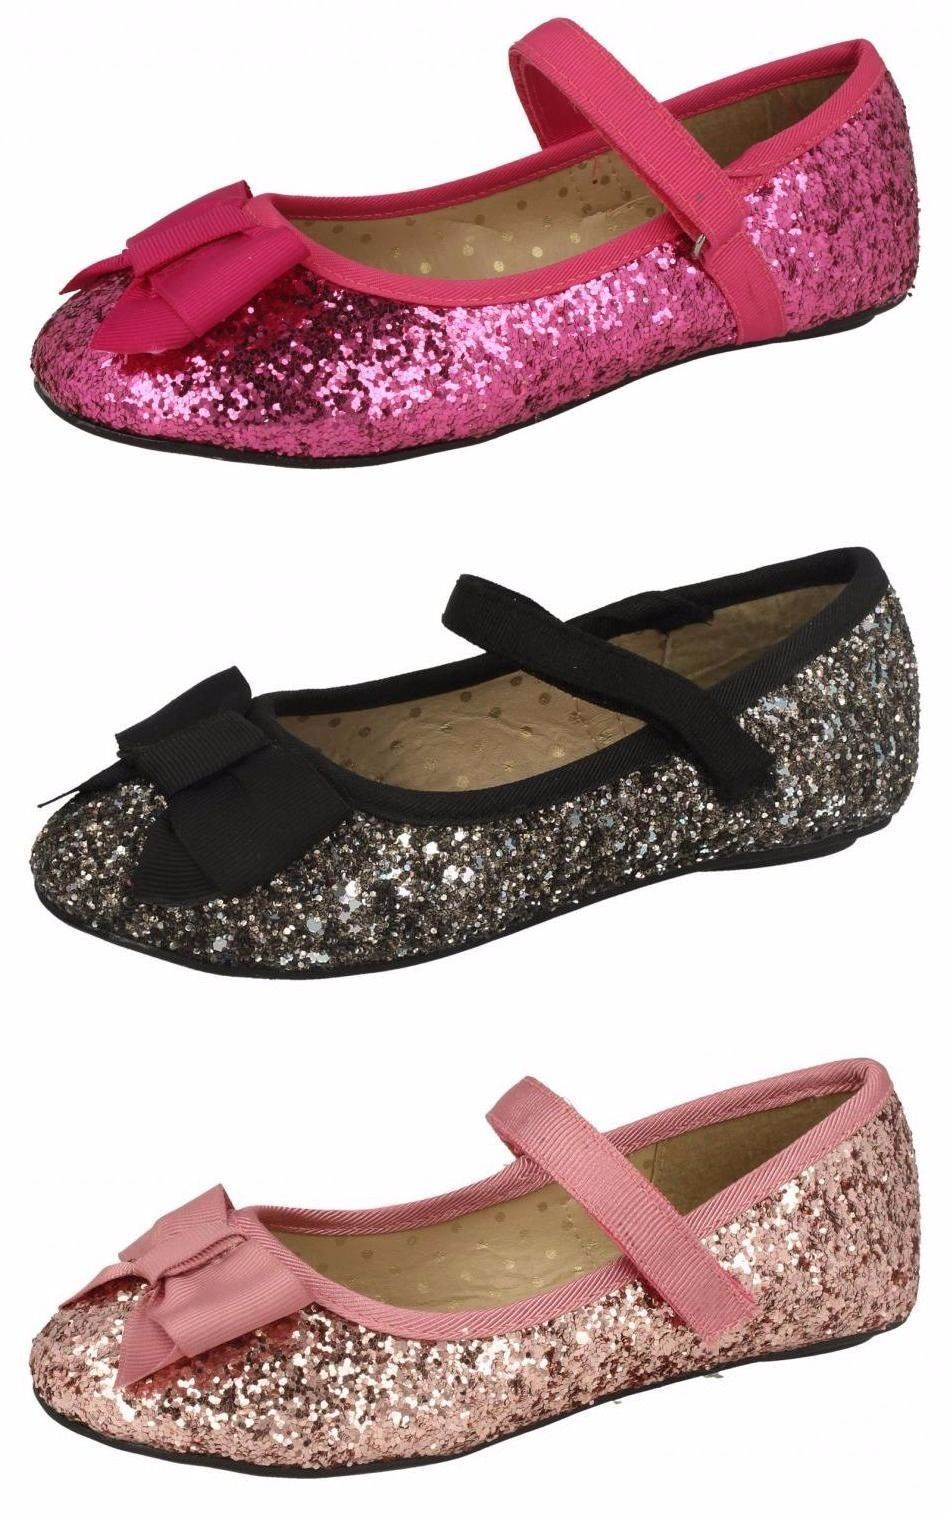 Girls Pink/&Black Spot On Party Summer Sparkly Dolly Shoes UK Sizes 10-2 H2428